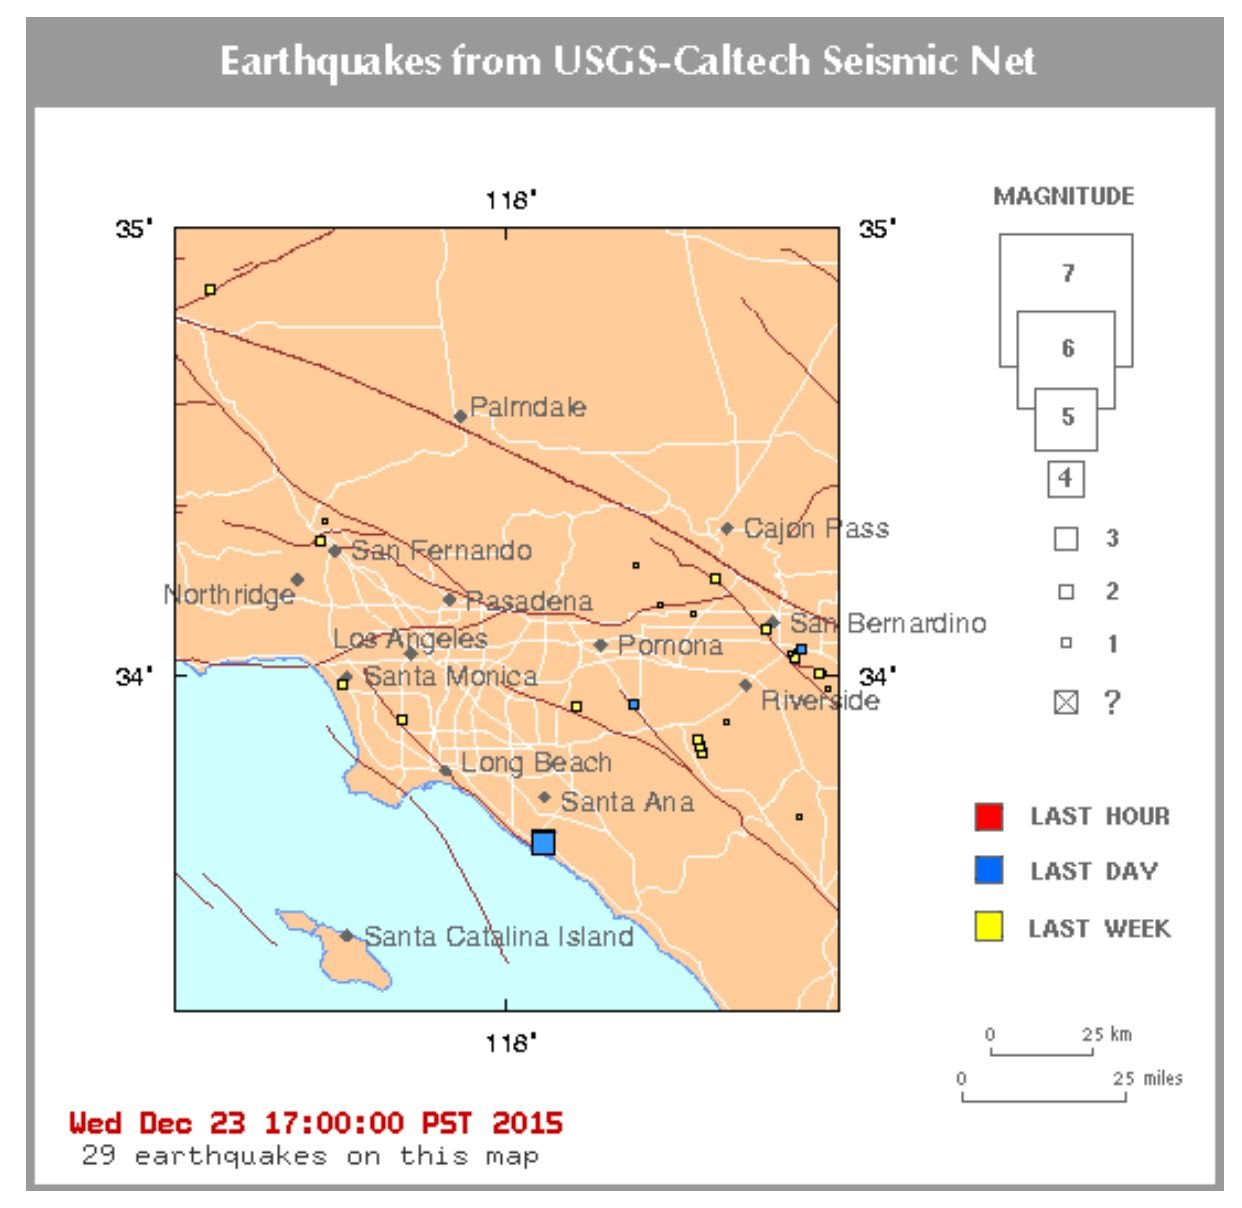 File courtesy of Caltech Congress allocated $8.2 million toward the early earthquake warning system, which seismologists say could provide significant notice of incoming quakes.